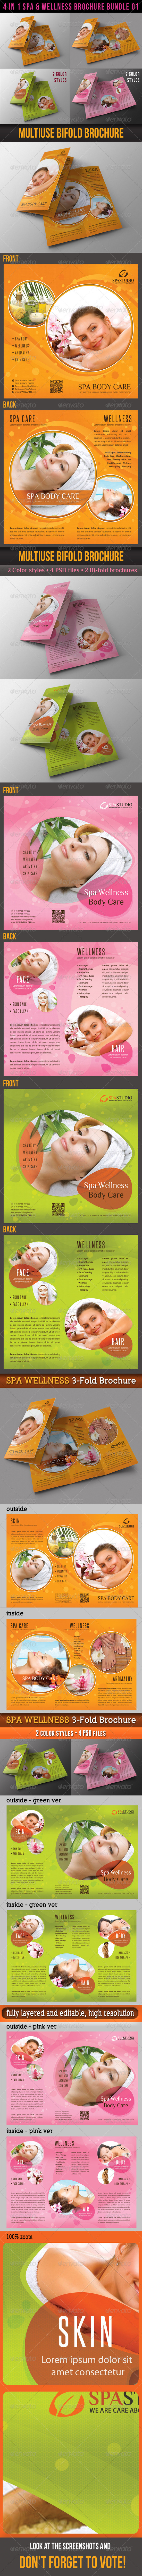 GraphicRiver 4 in 1 Spa Wellness Brochure Bundle 01 6661023